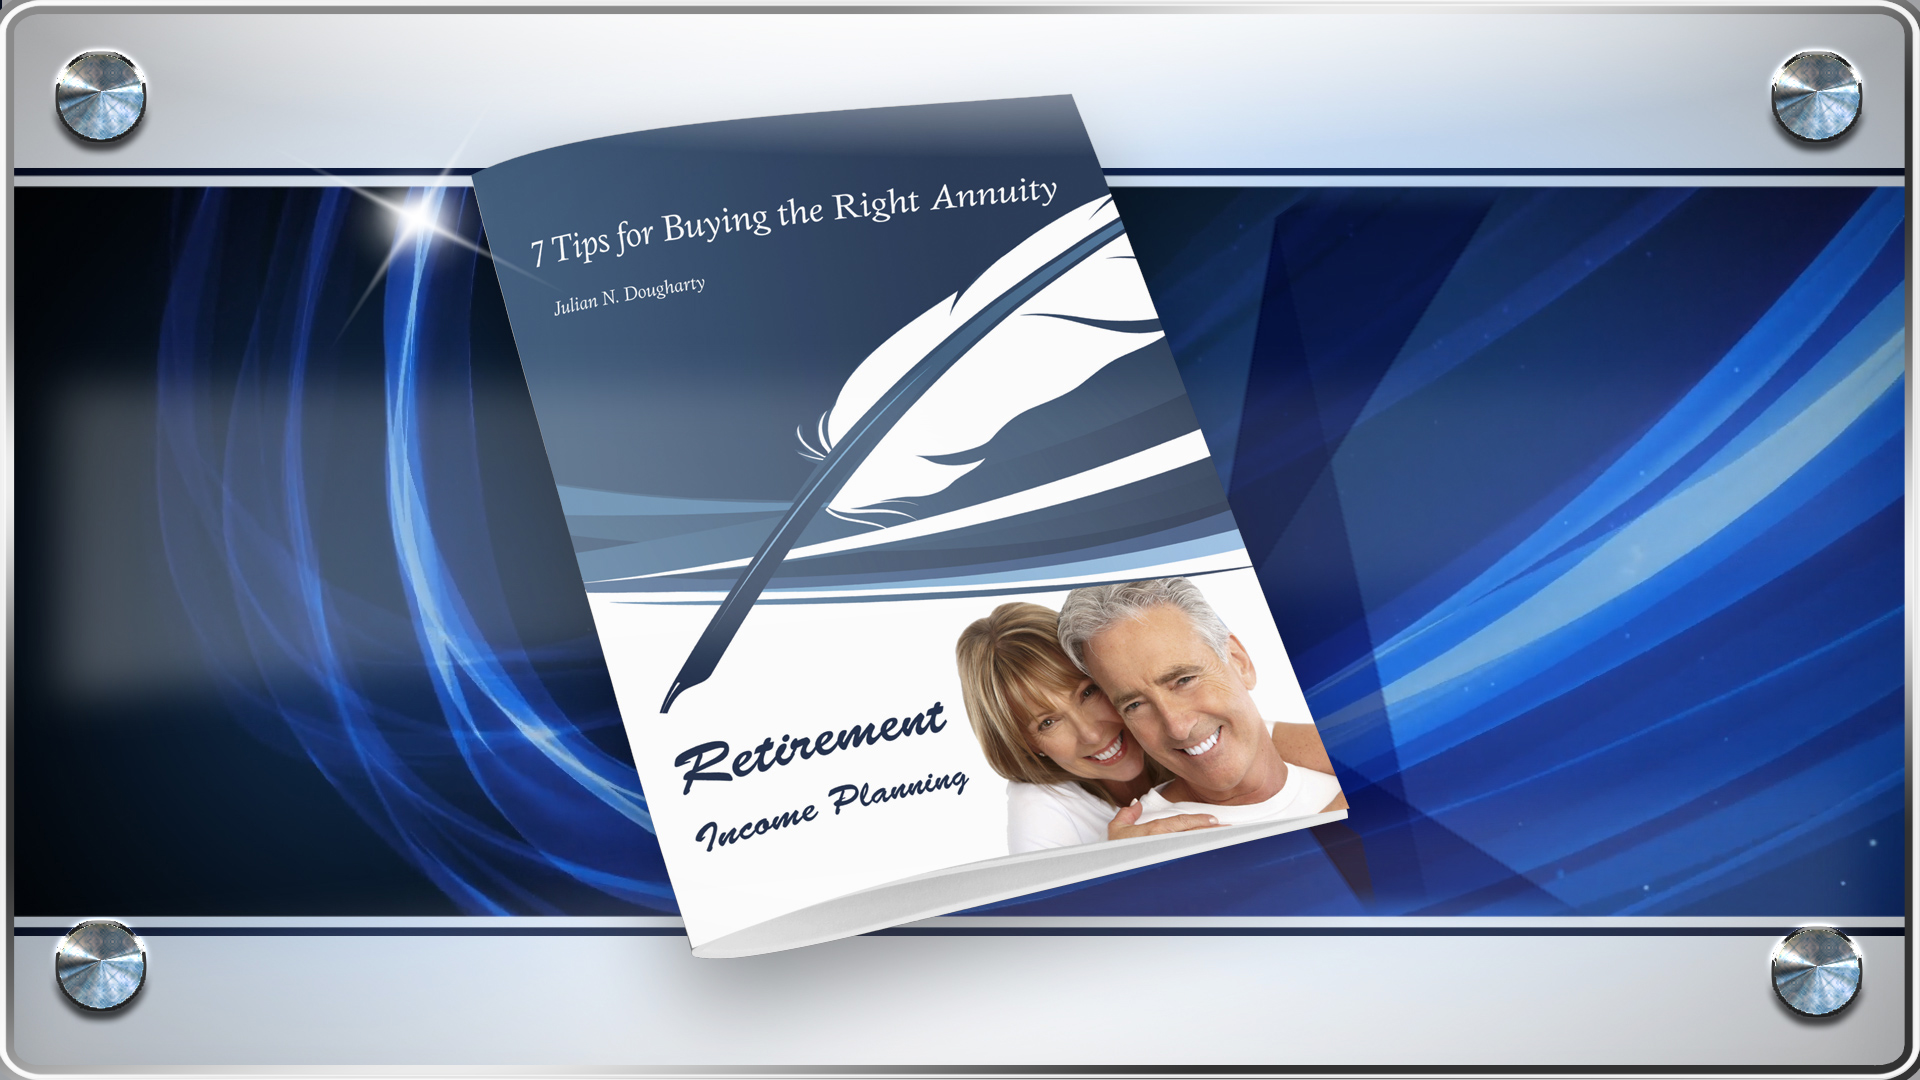 7 Tips To Buying The Right Annuity Booklet